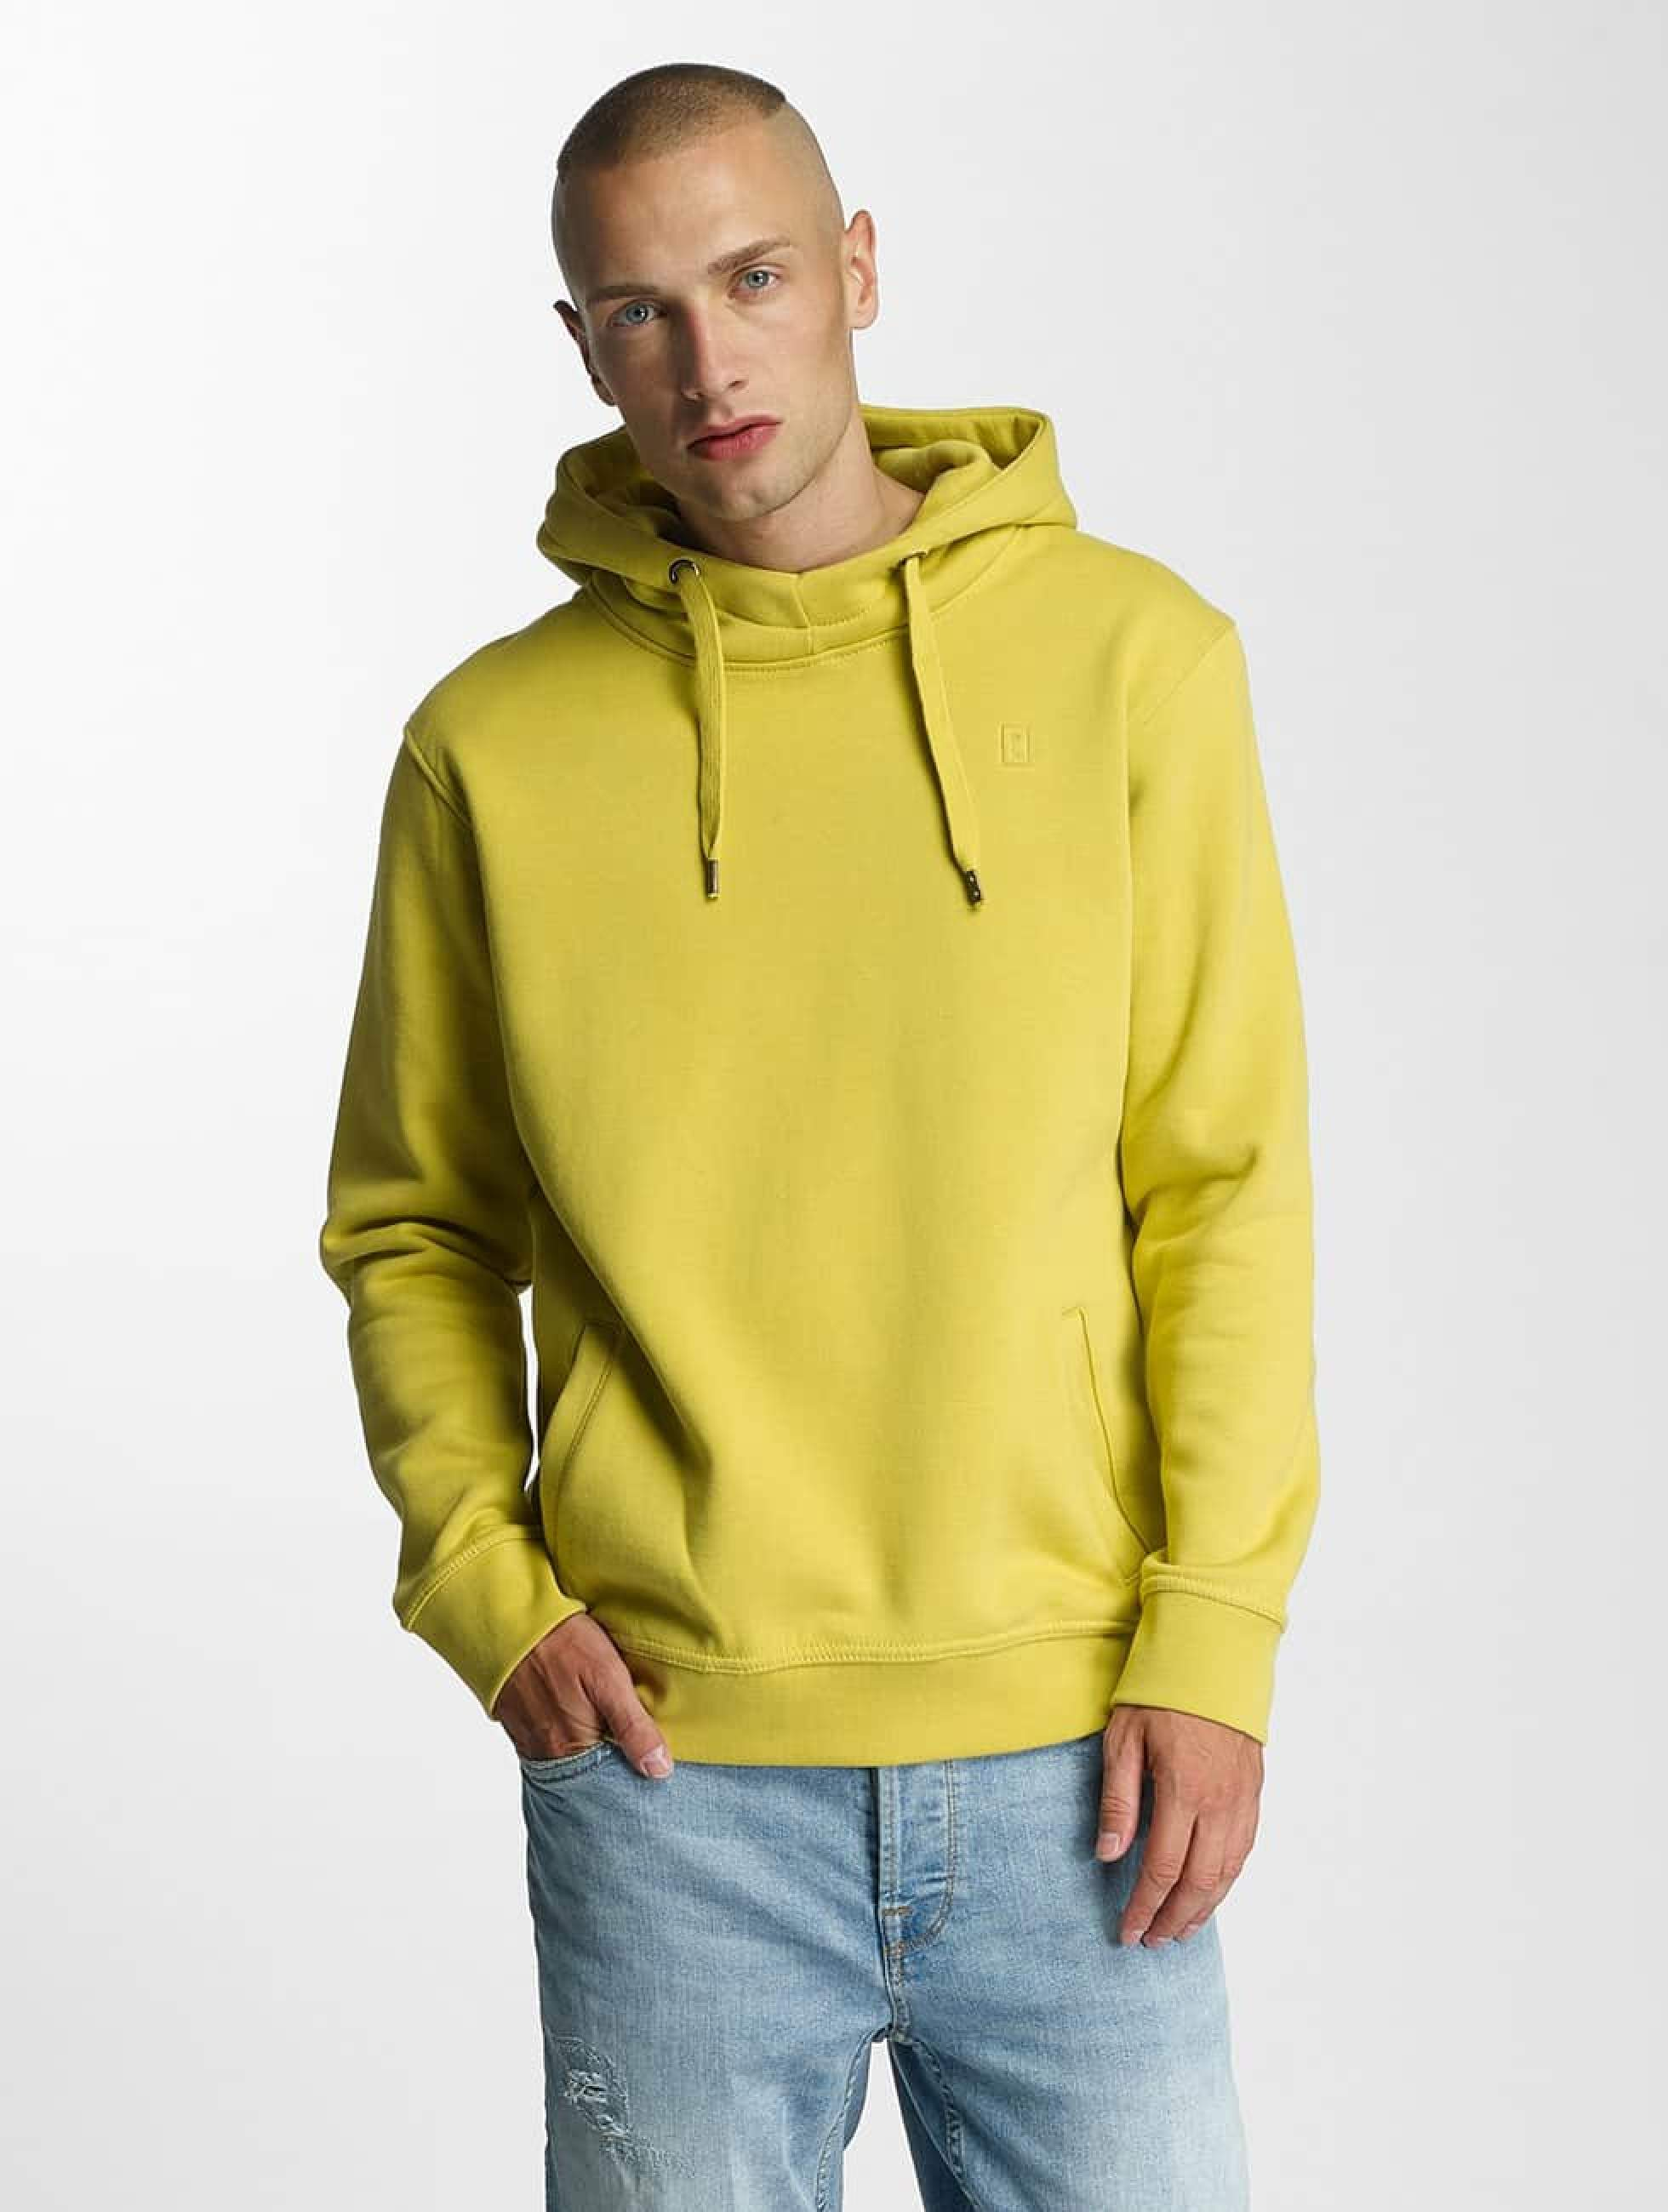 Cyprime / Hoodie Cyber in yellow M